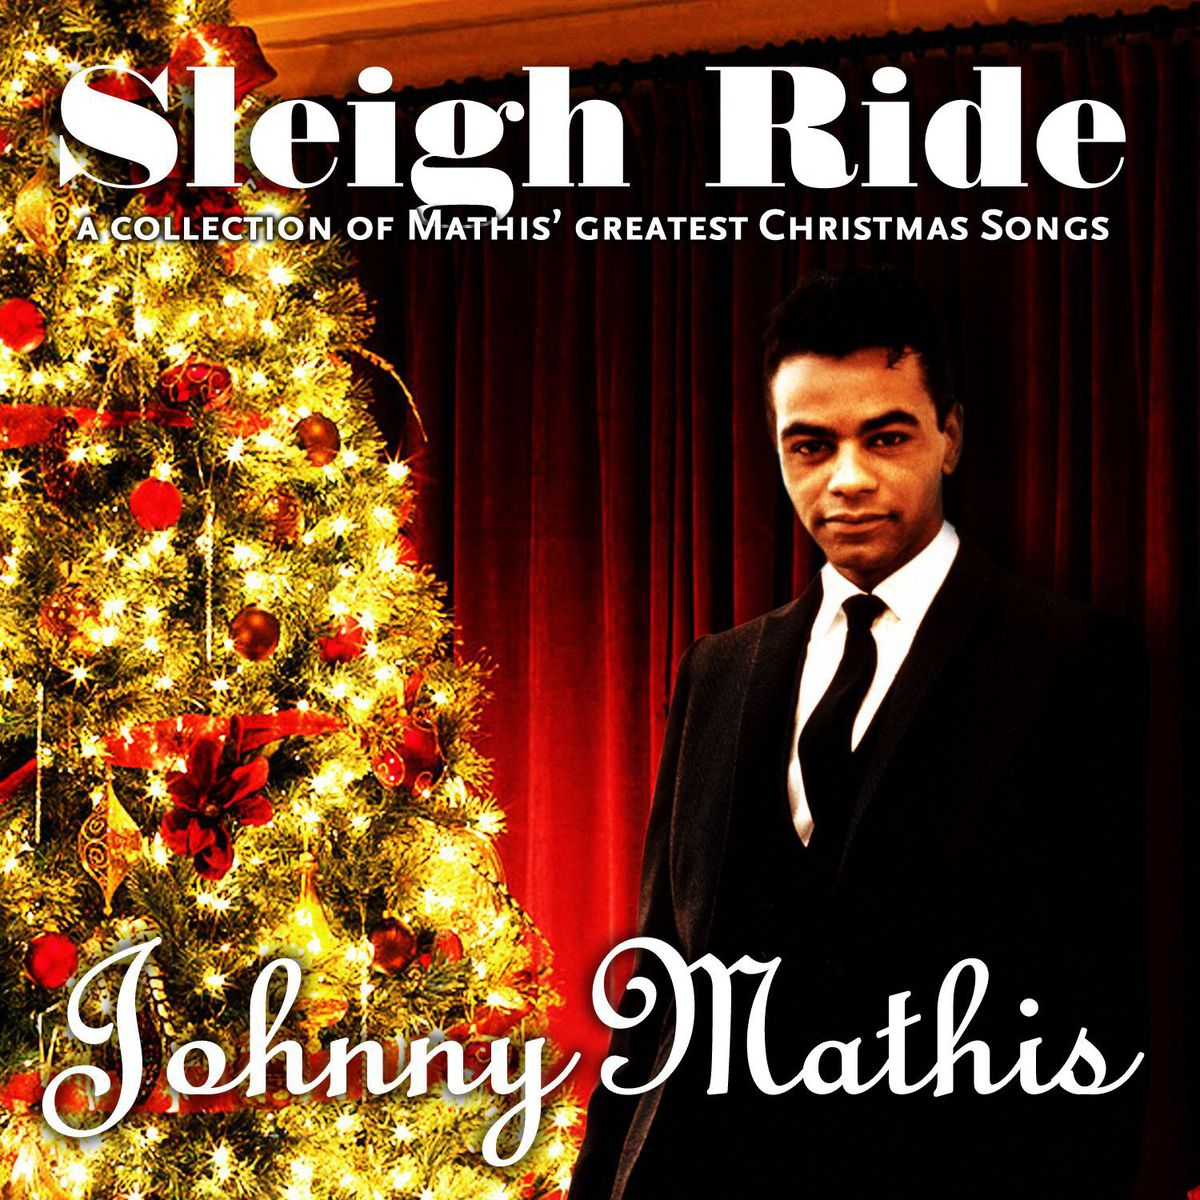 Listen Free to Johnny Mathis - What Child Is This? Radio | iHeartRadio